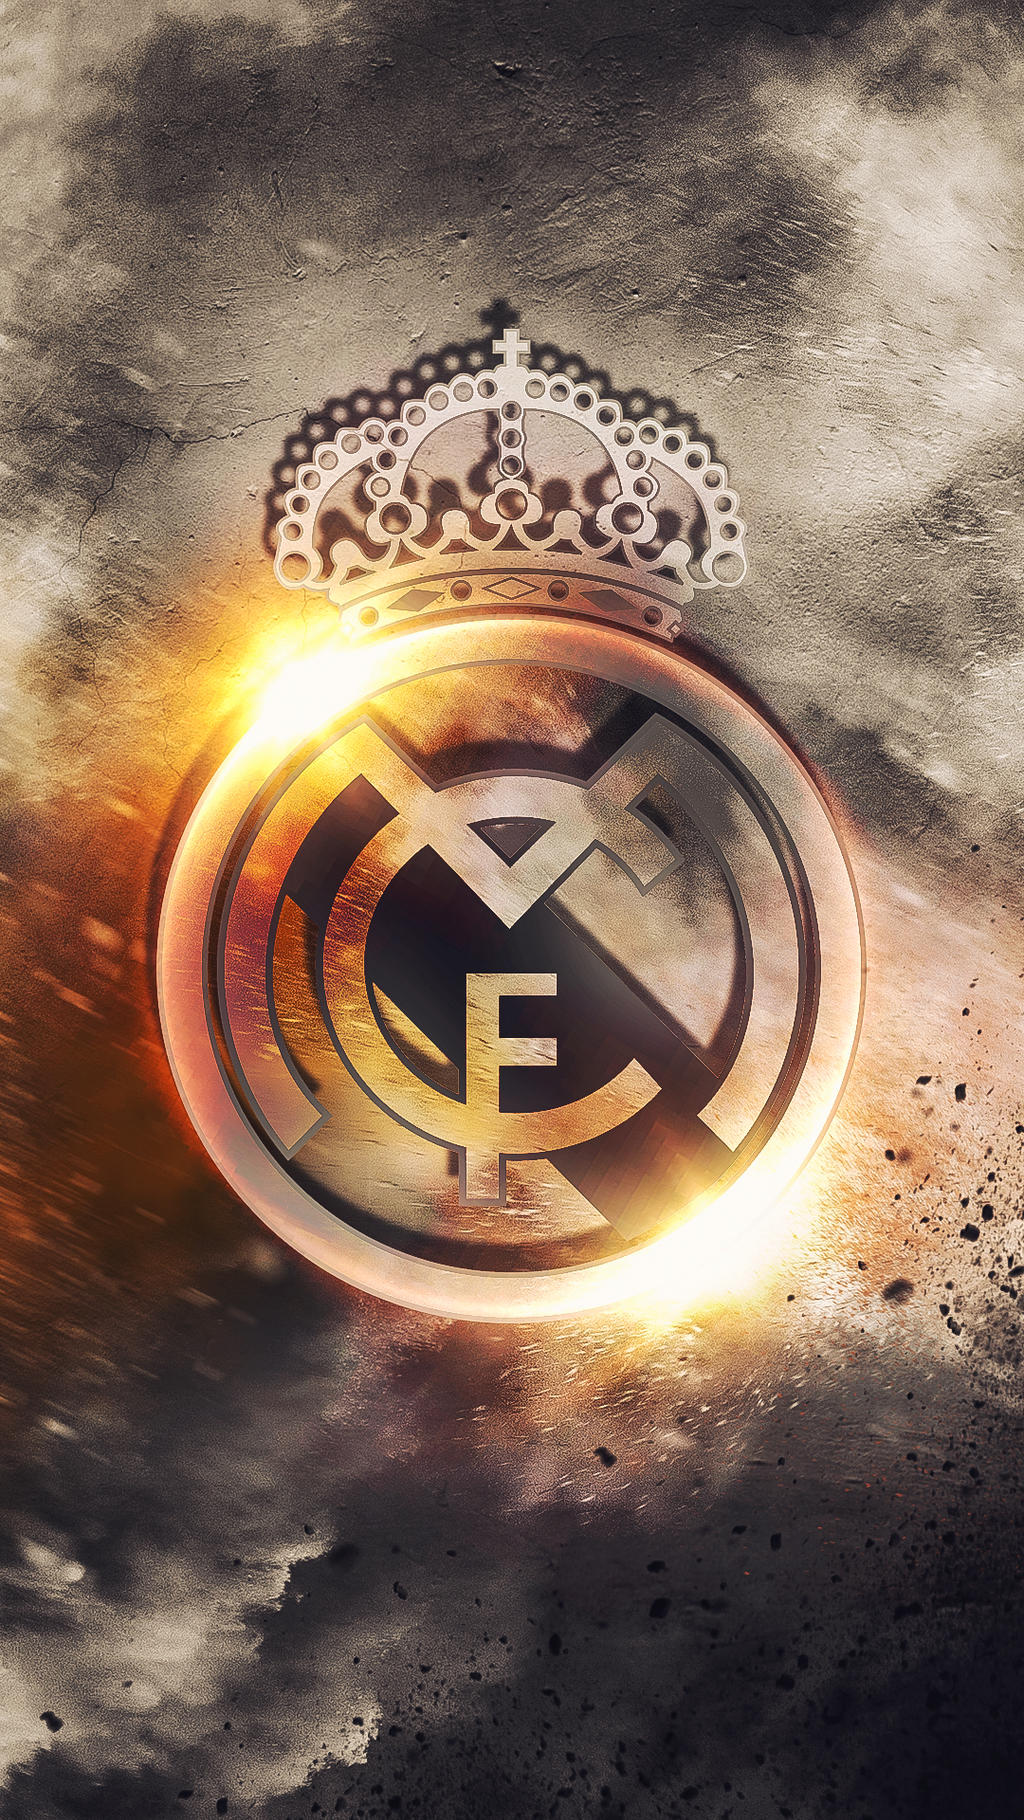 Real madrid hd logo wallpaper by kerimov23 on deviantart - Real madrid pictures wallpapers 2017 ...